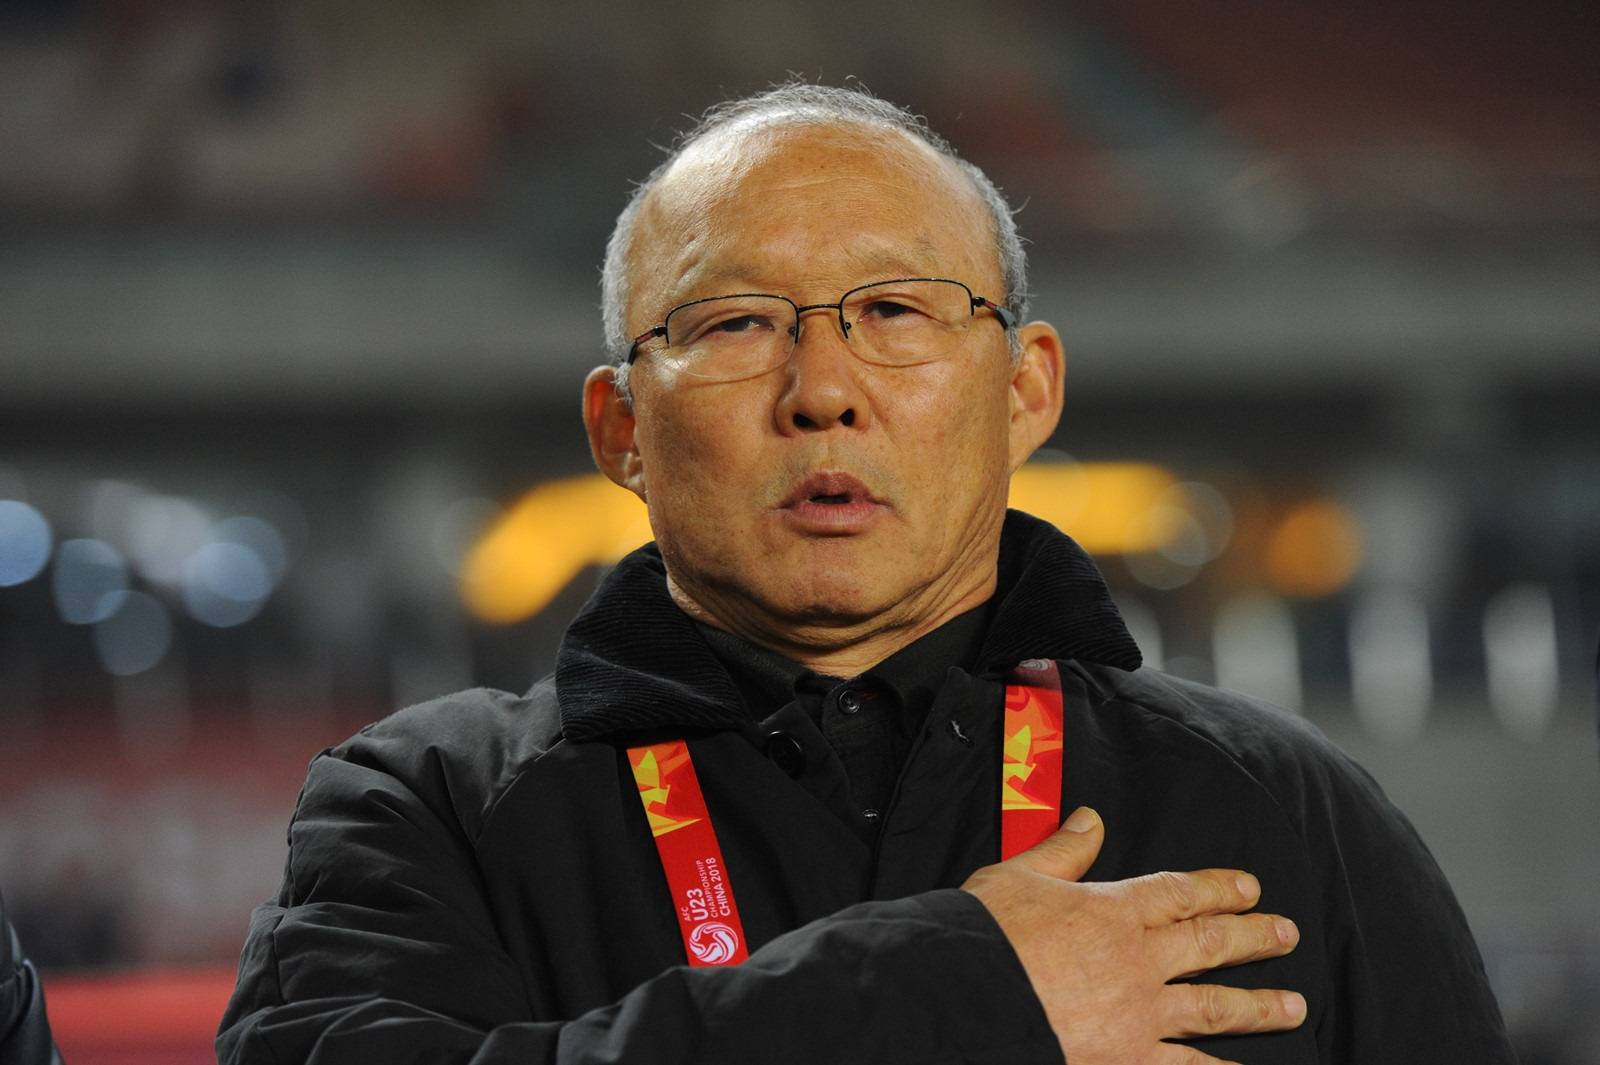 Vietnam coach Park Hang-seo to attend 2019 AFC Asian Cup draw ceremony in UAE